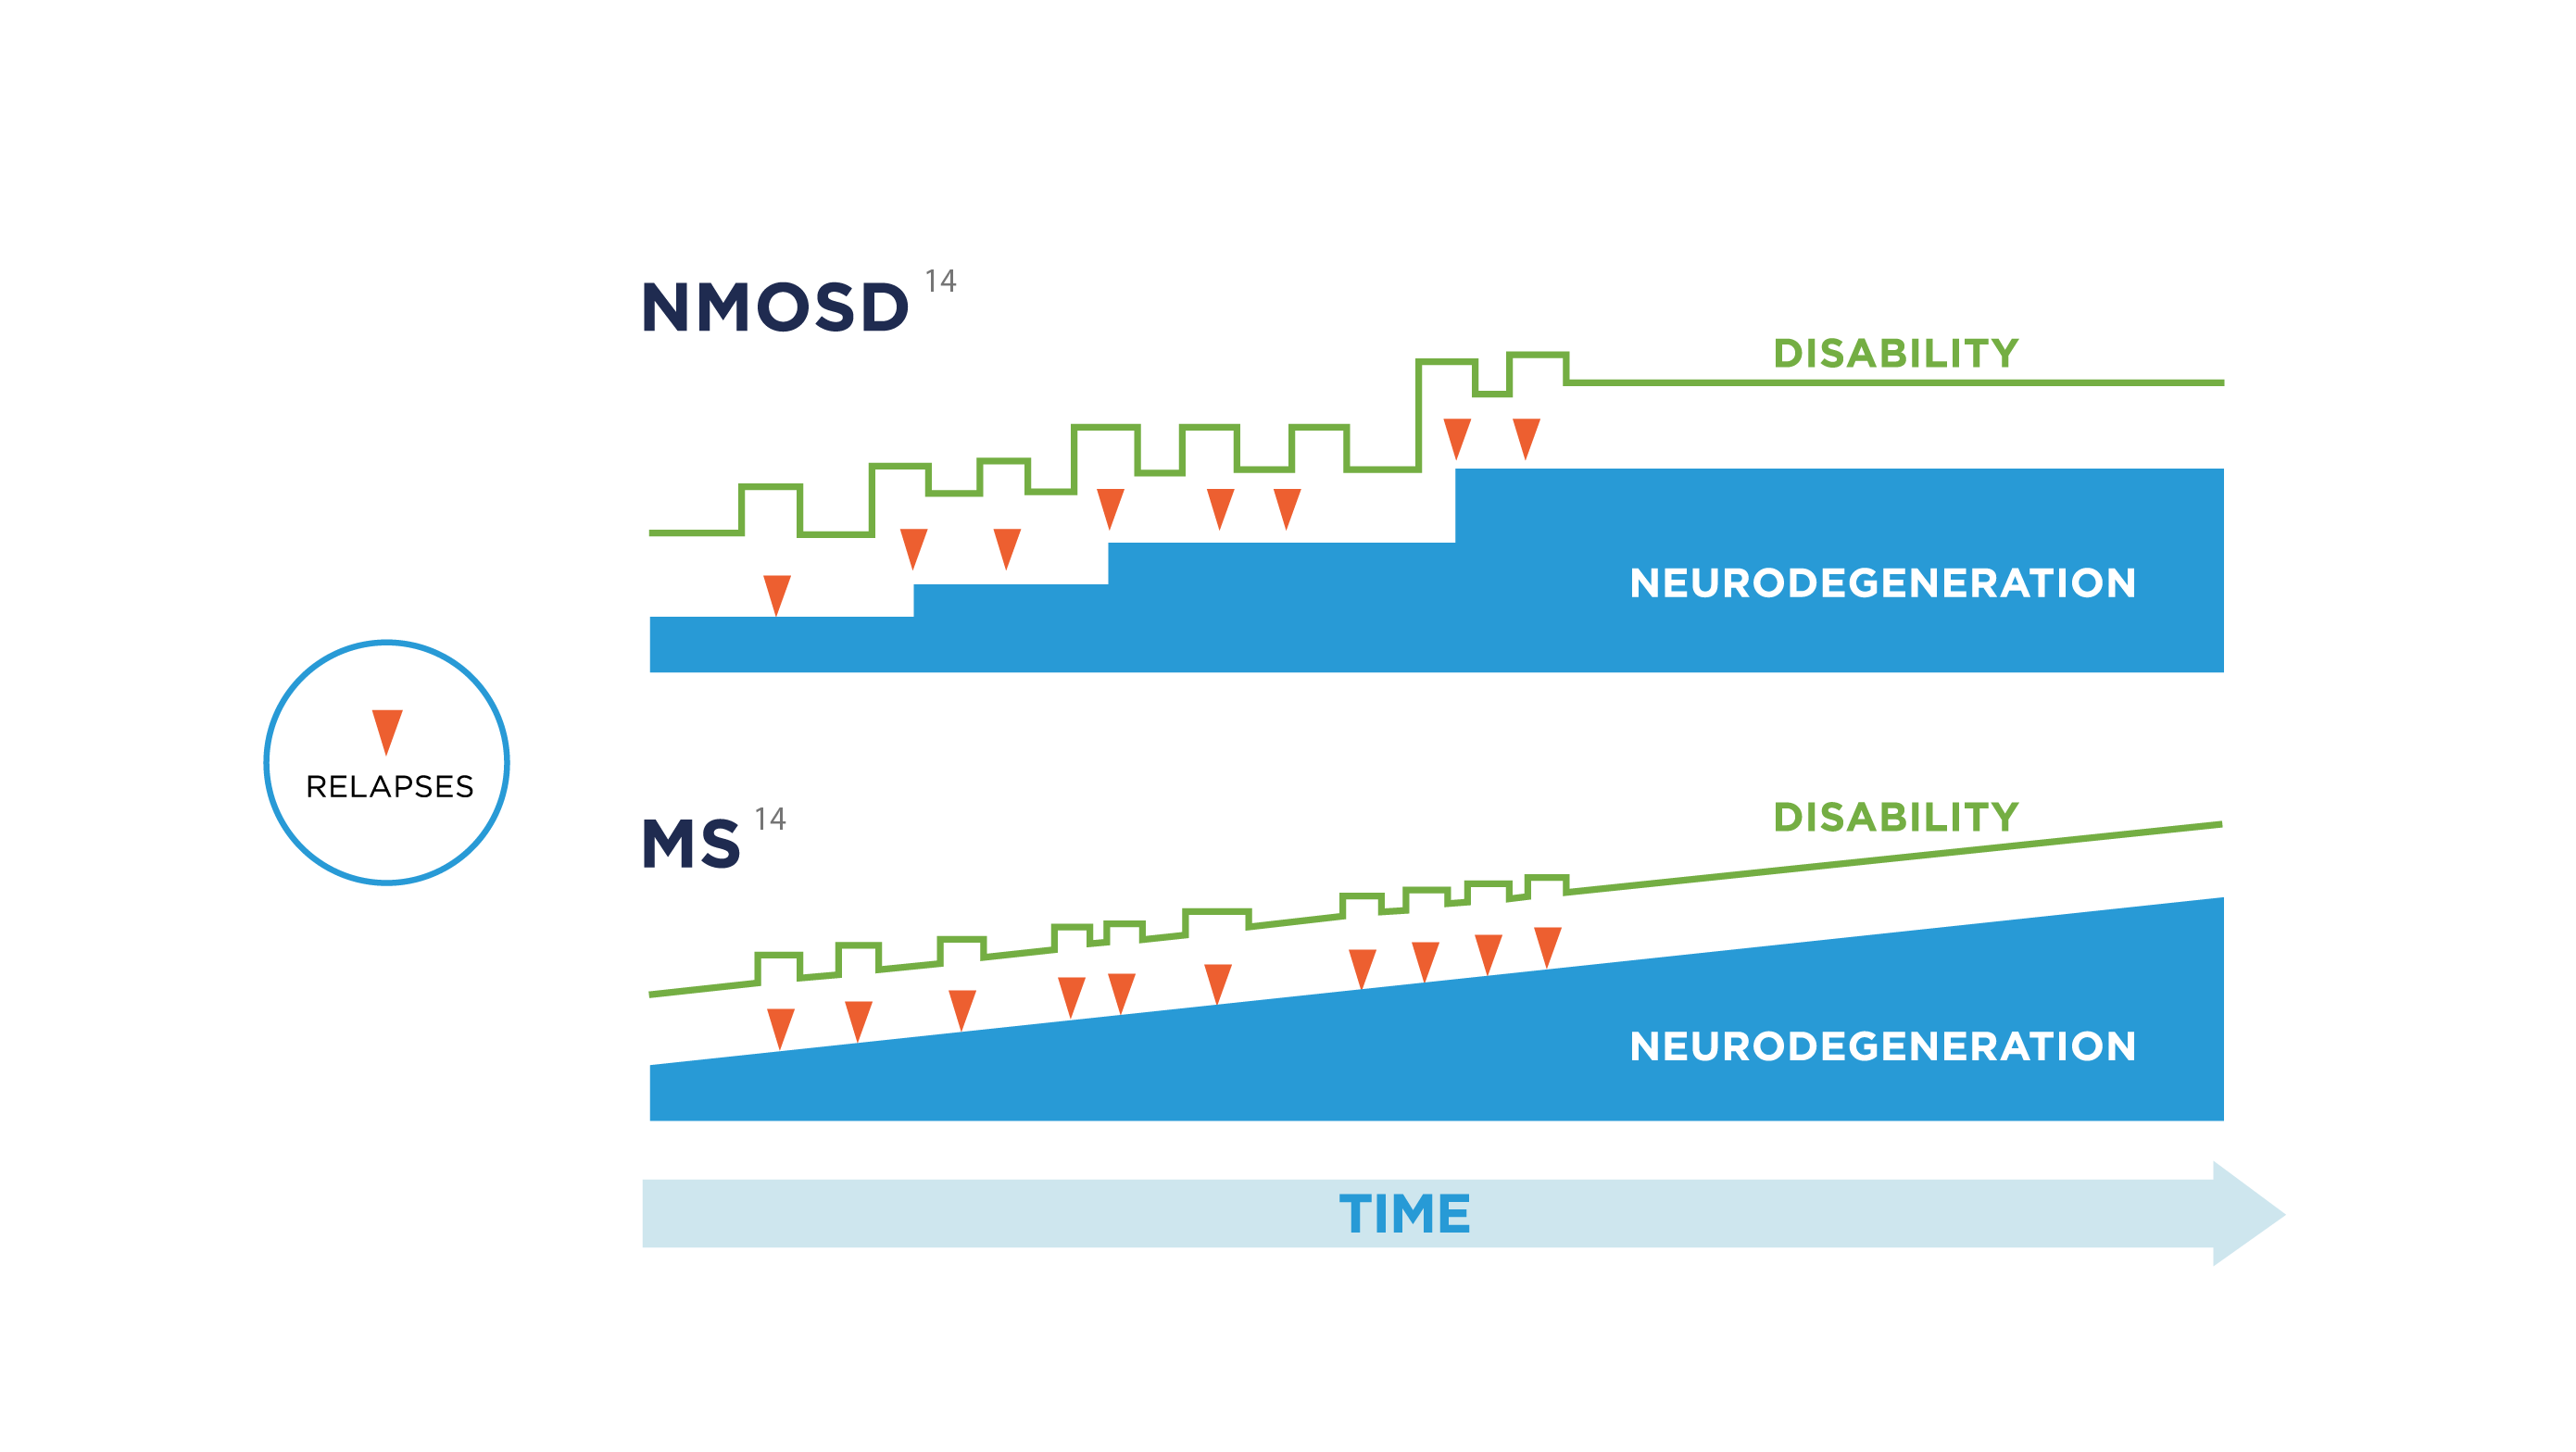 The amount of neurodegeneration that people with NMOSD suffer is almost exclusively related to their relapses. This is different from MS, which is a progressive disease from the start, no matter how it manifests, as disability tends to accumulate relentlessly.<sup>14</sup>